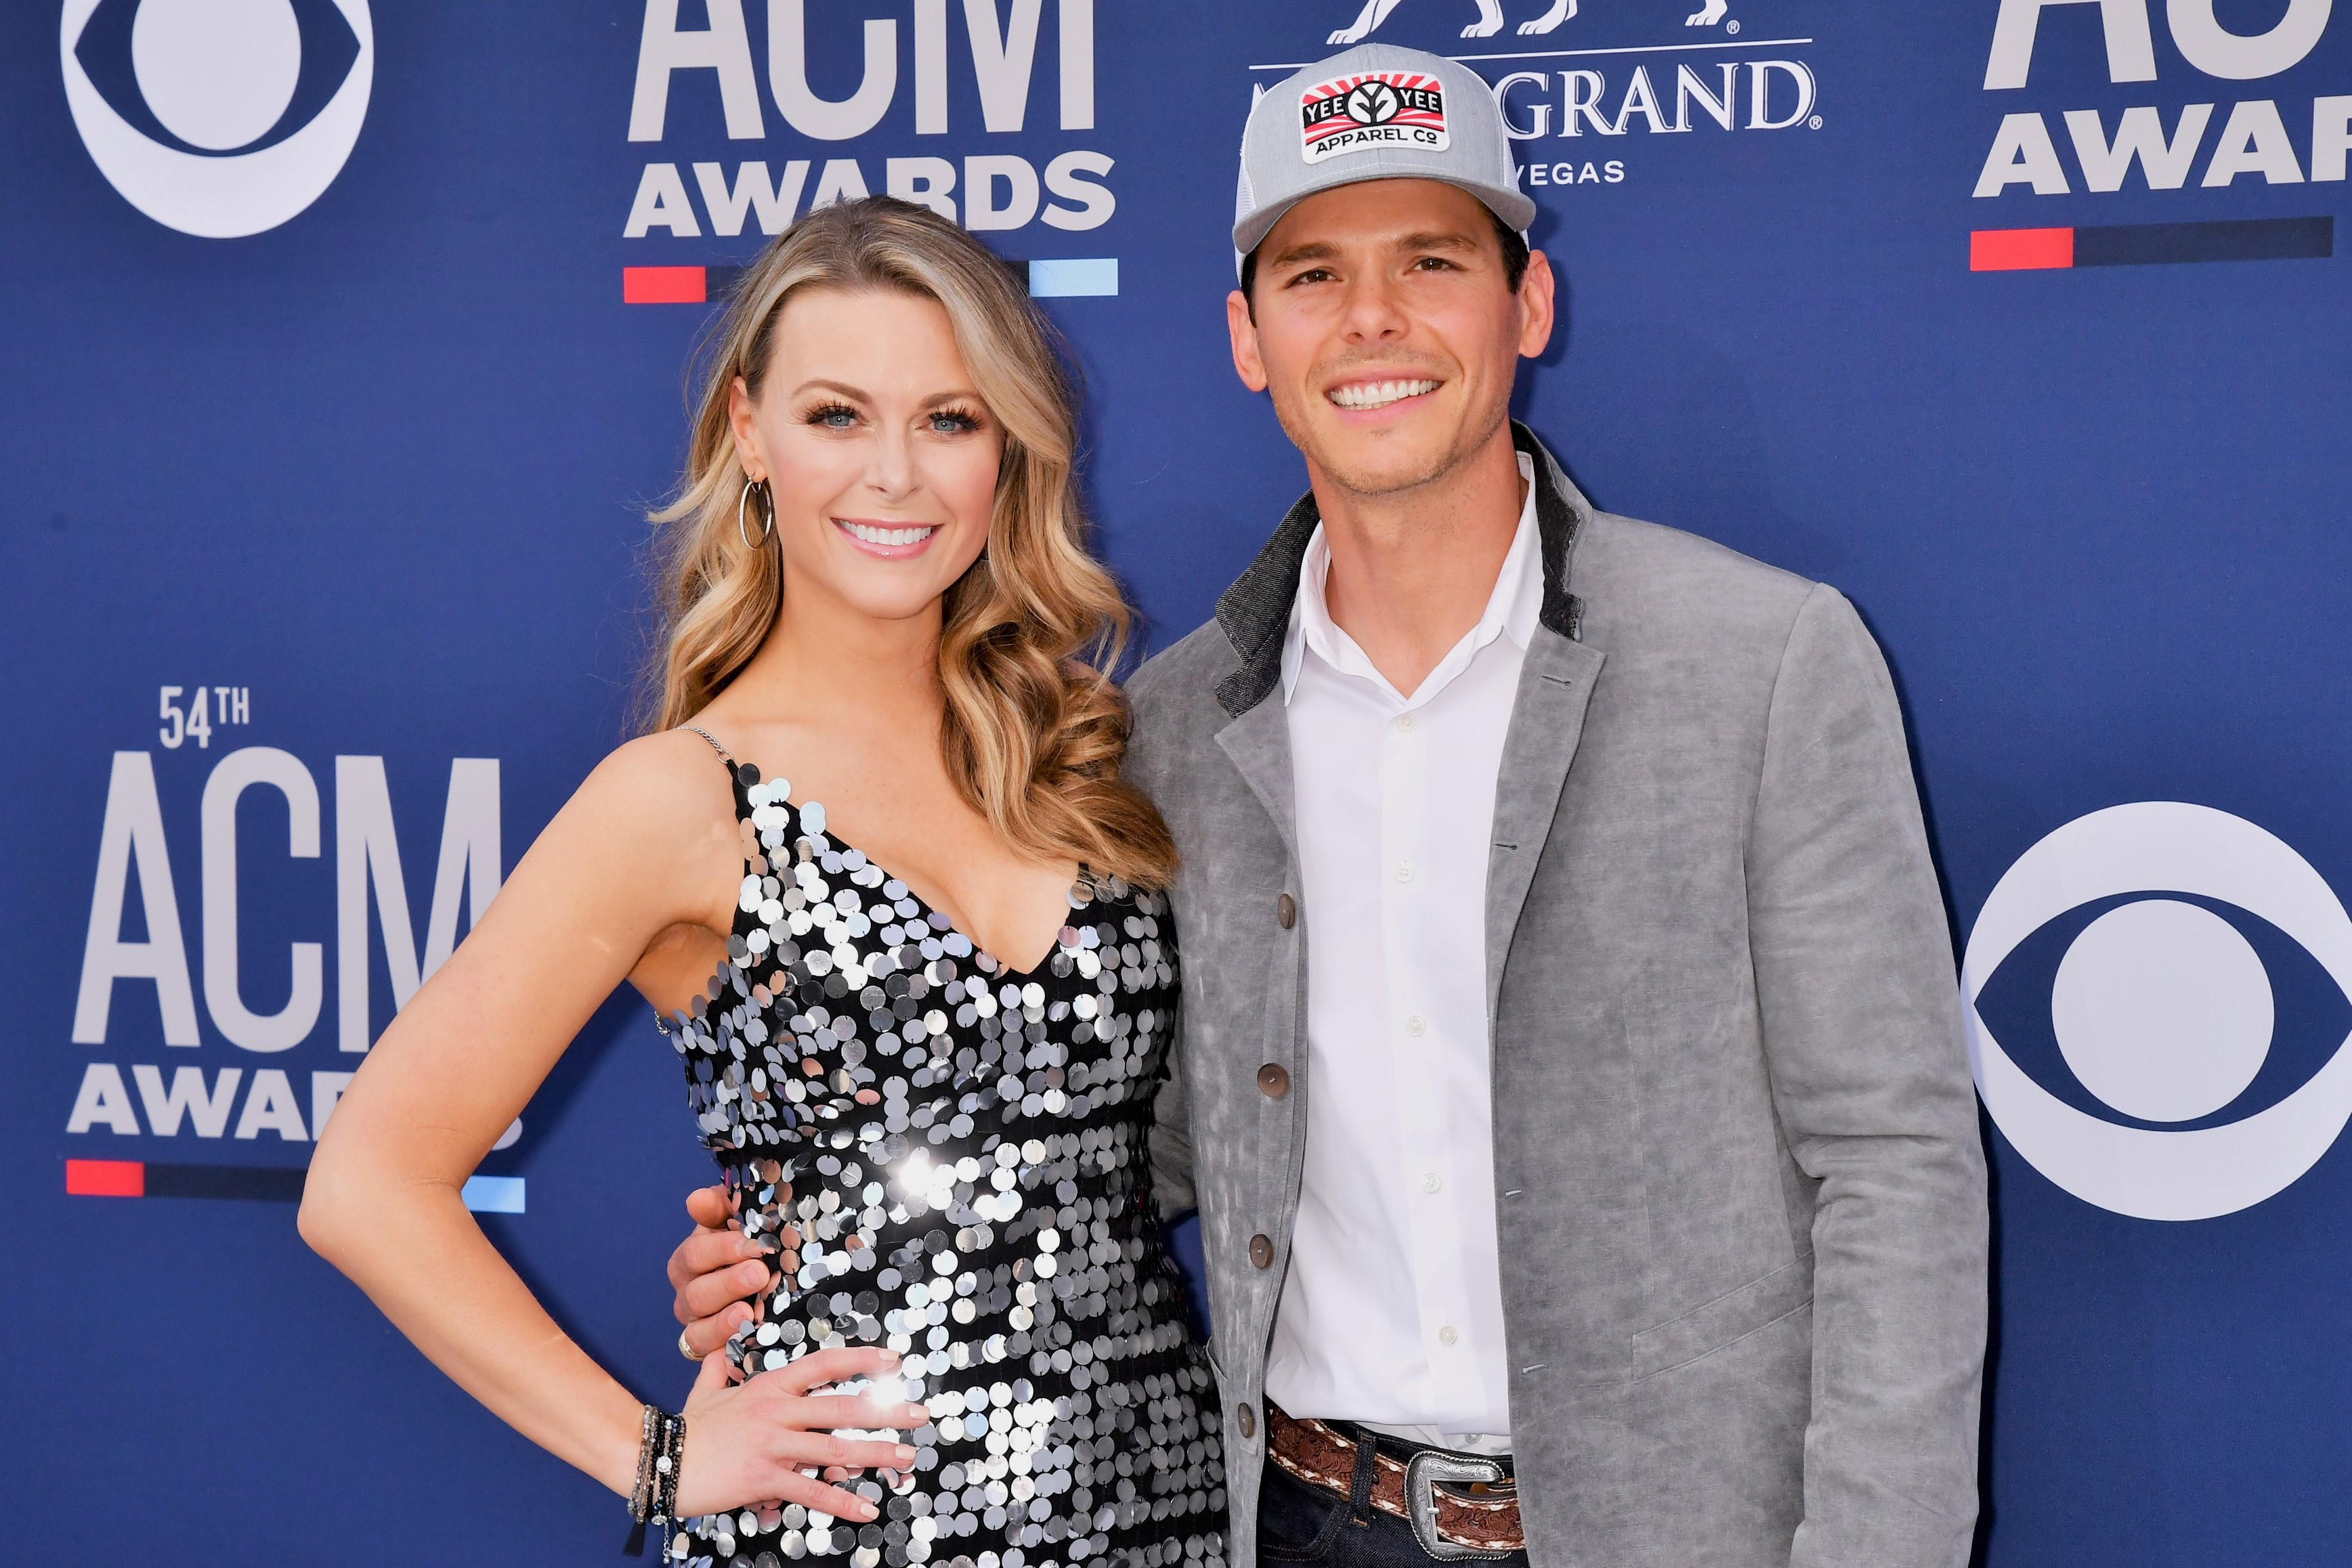 Granger Smith's Son, River, 3, Died in a Drowning Accident at Home, Singer's Rep Confirms